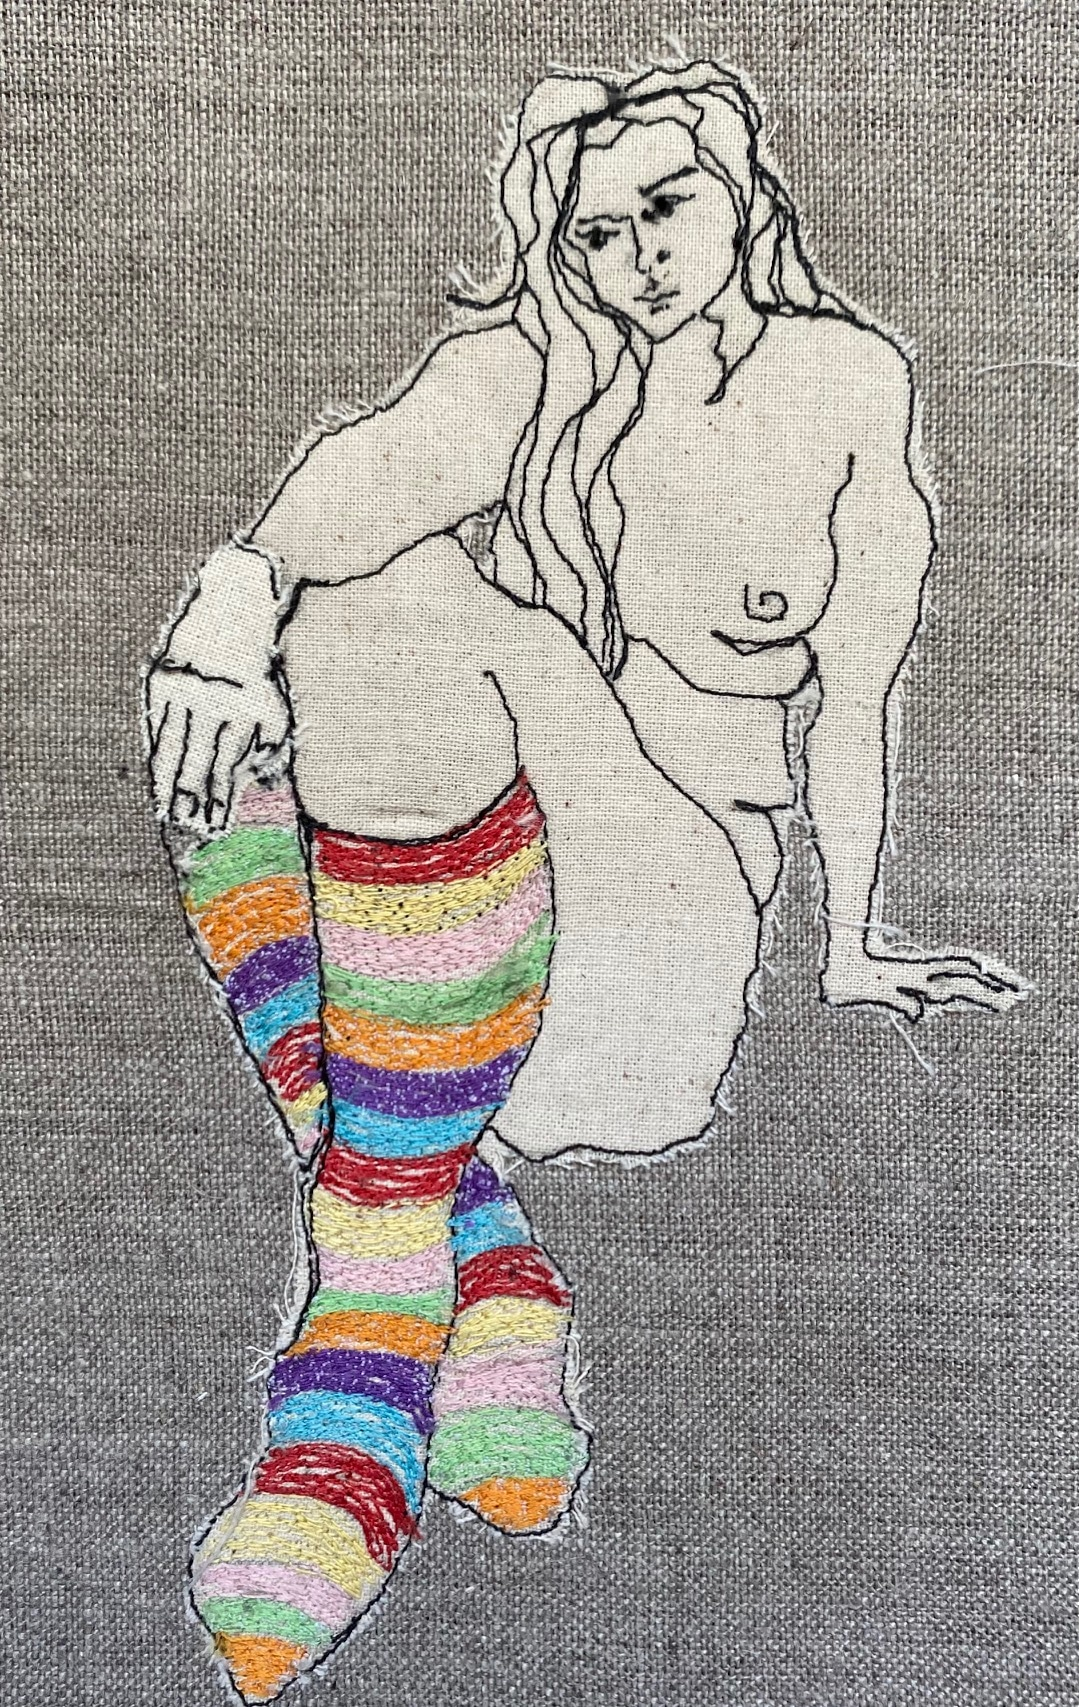 Ms Stripey Socks III Embroidered Textile Artwork By  Juliet D Collins (Fitzroy)